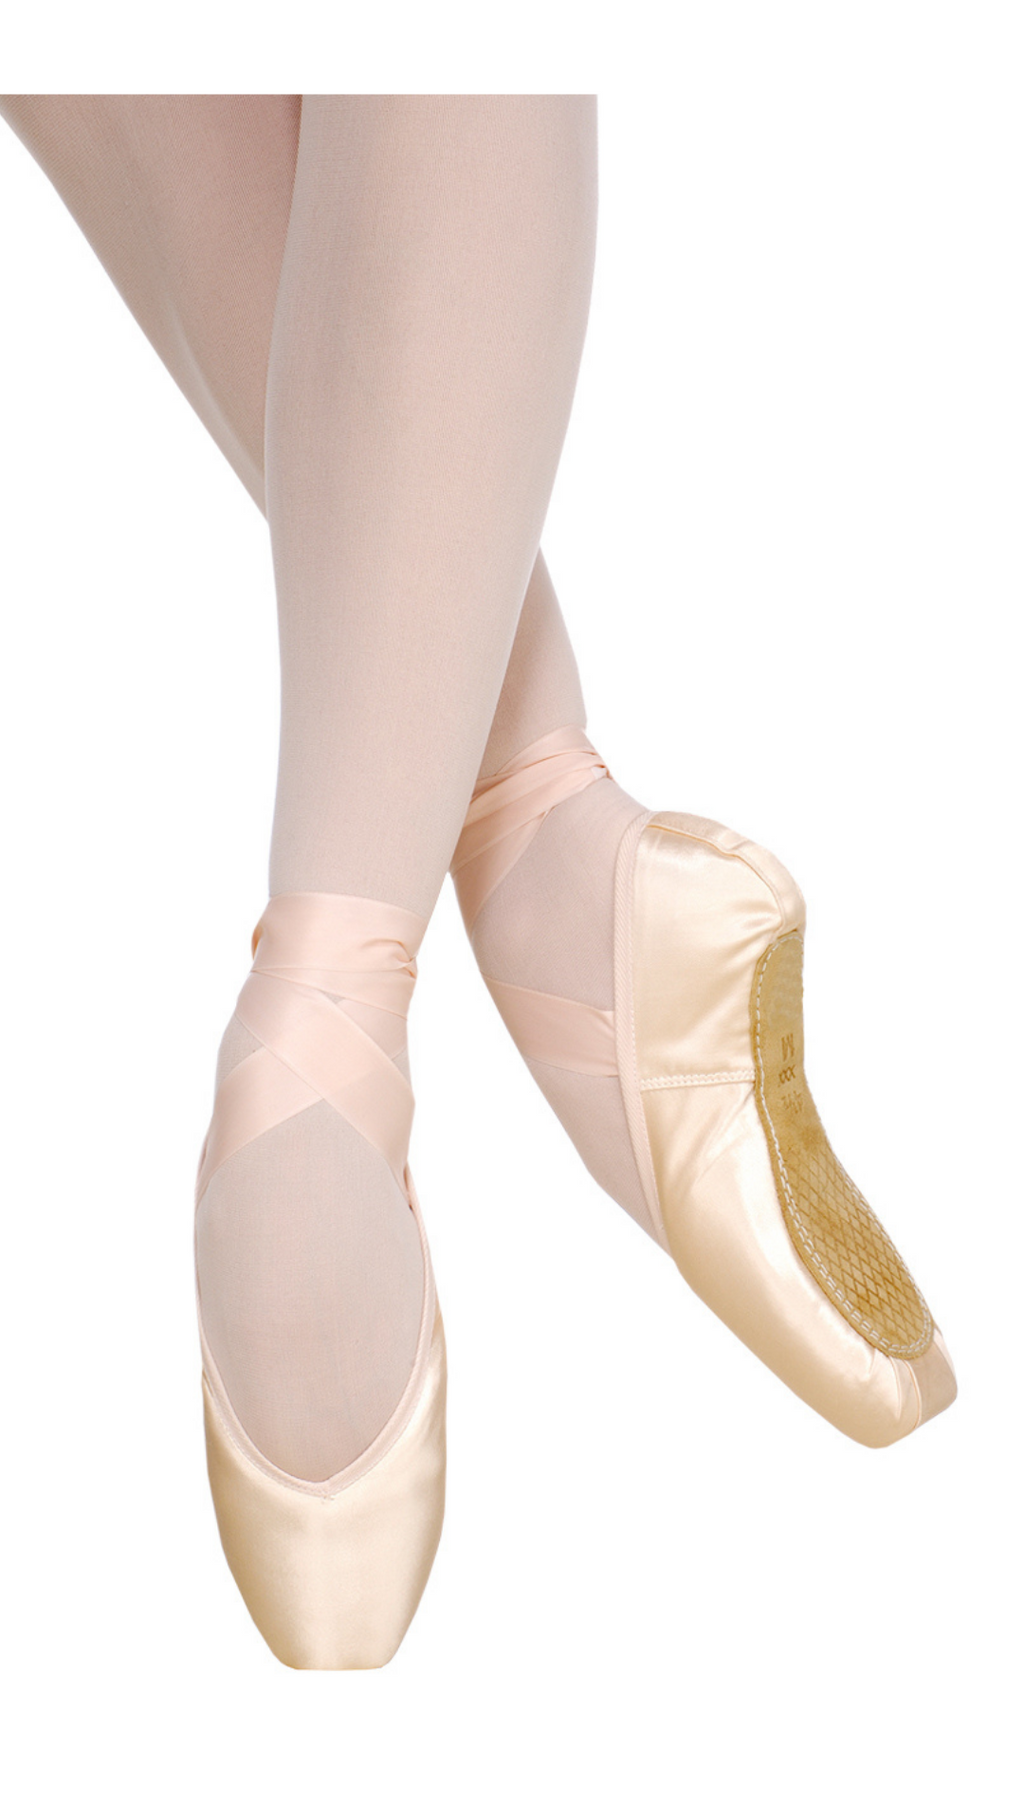 Maya Pointe Shoe - Medium Shank (M)